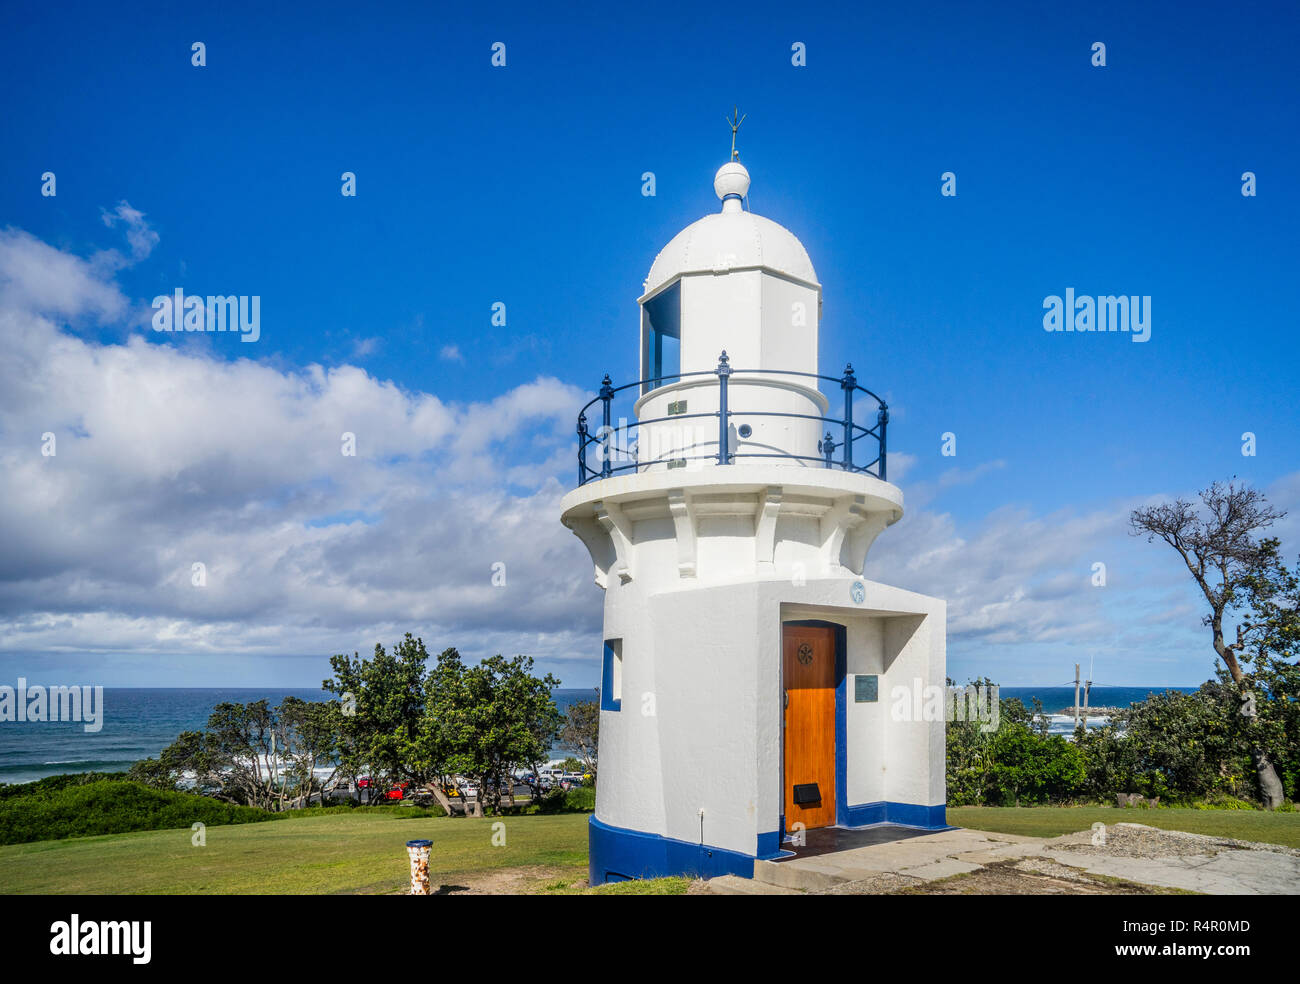 historic 1866 Richmond River Lighthouse in Ballina in the Northern Rivers region of New South Wales, Australia - Stock Image